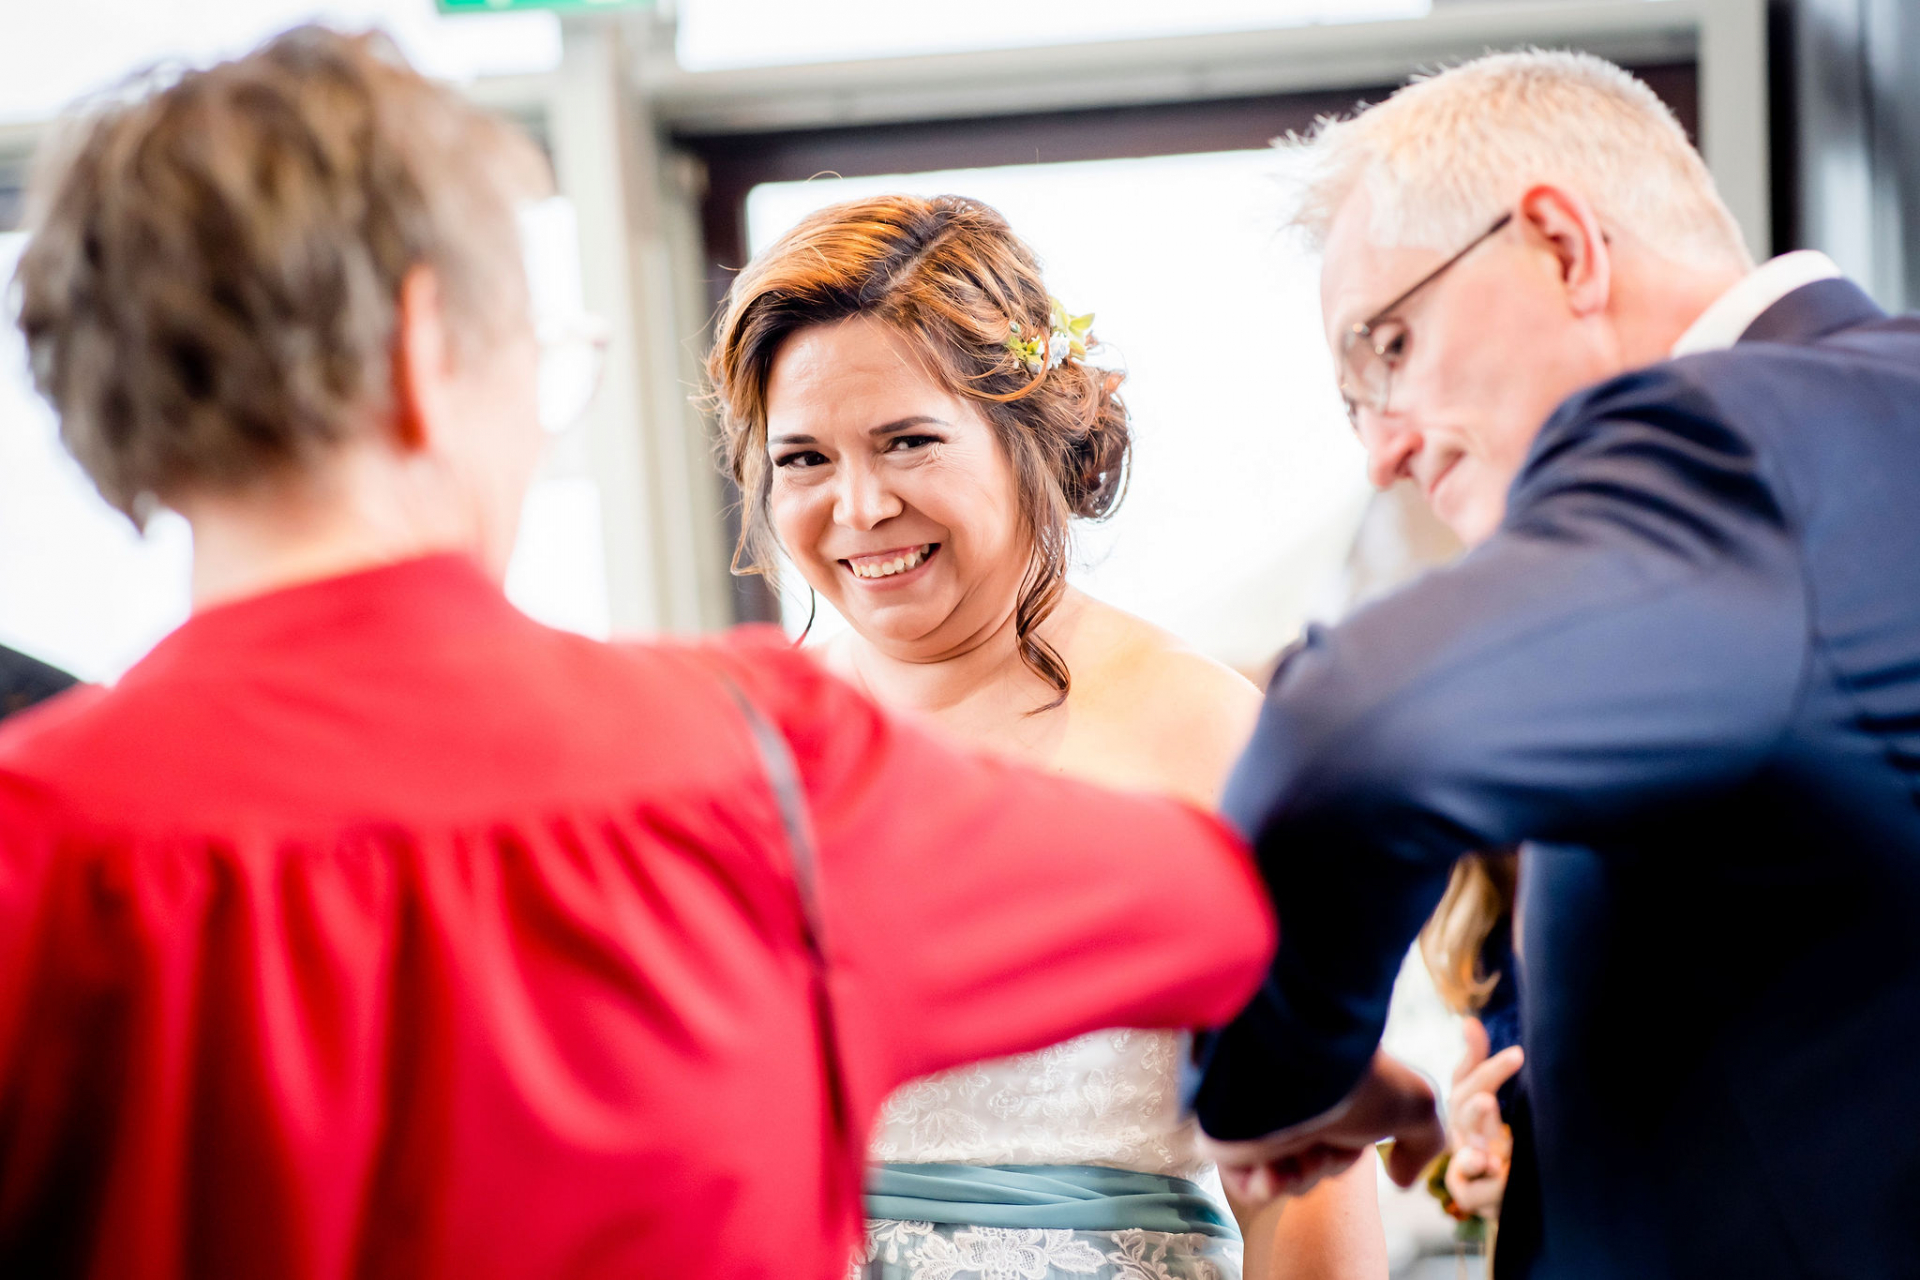 Top Wedding Photography of Netherlands | The bride laughs as the groom shares a COVID-friendly elbow bump